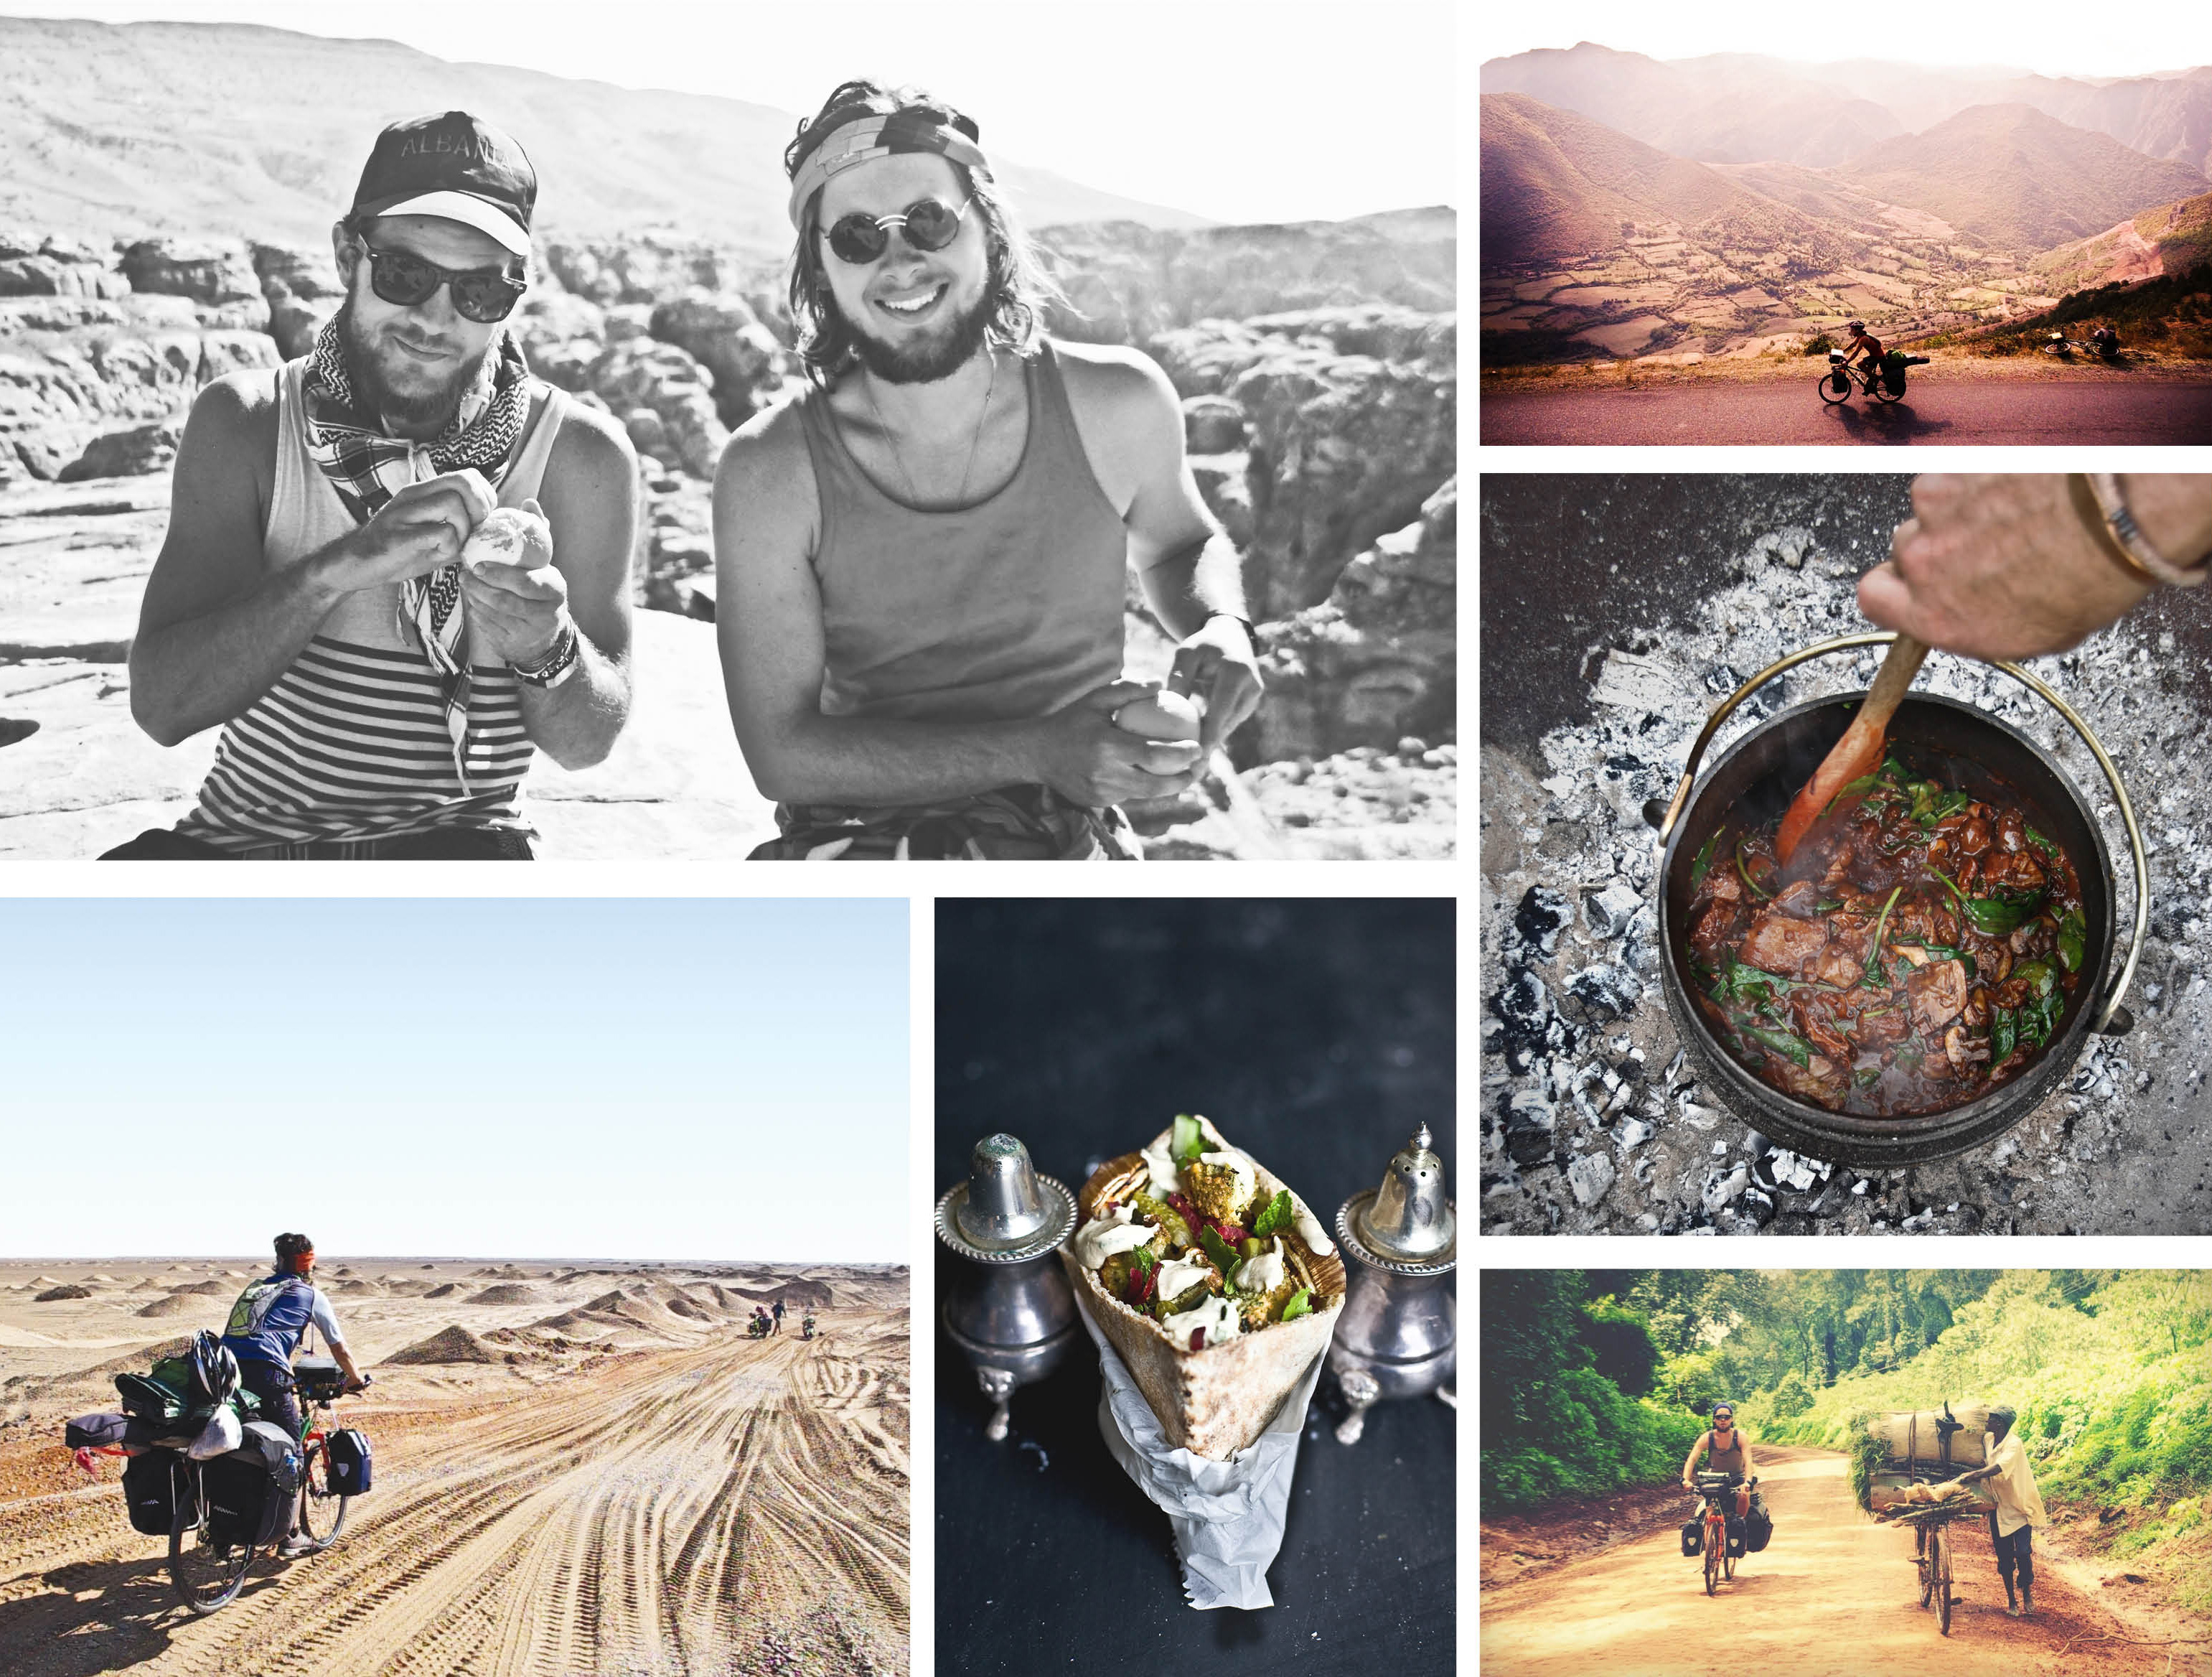 The Nomadic Kitchen - A Food journey by Tom Perkins